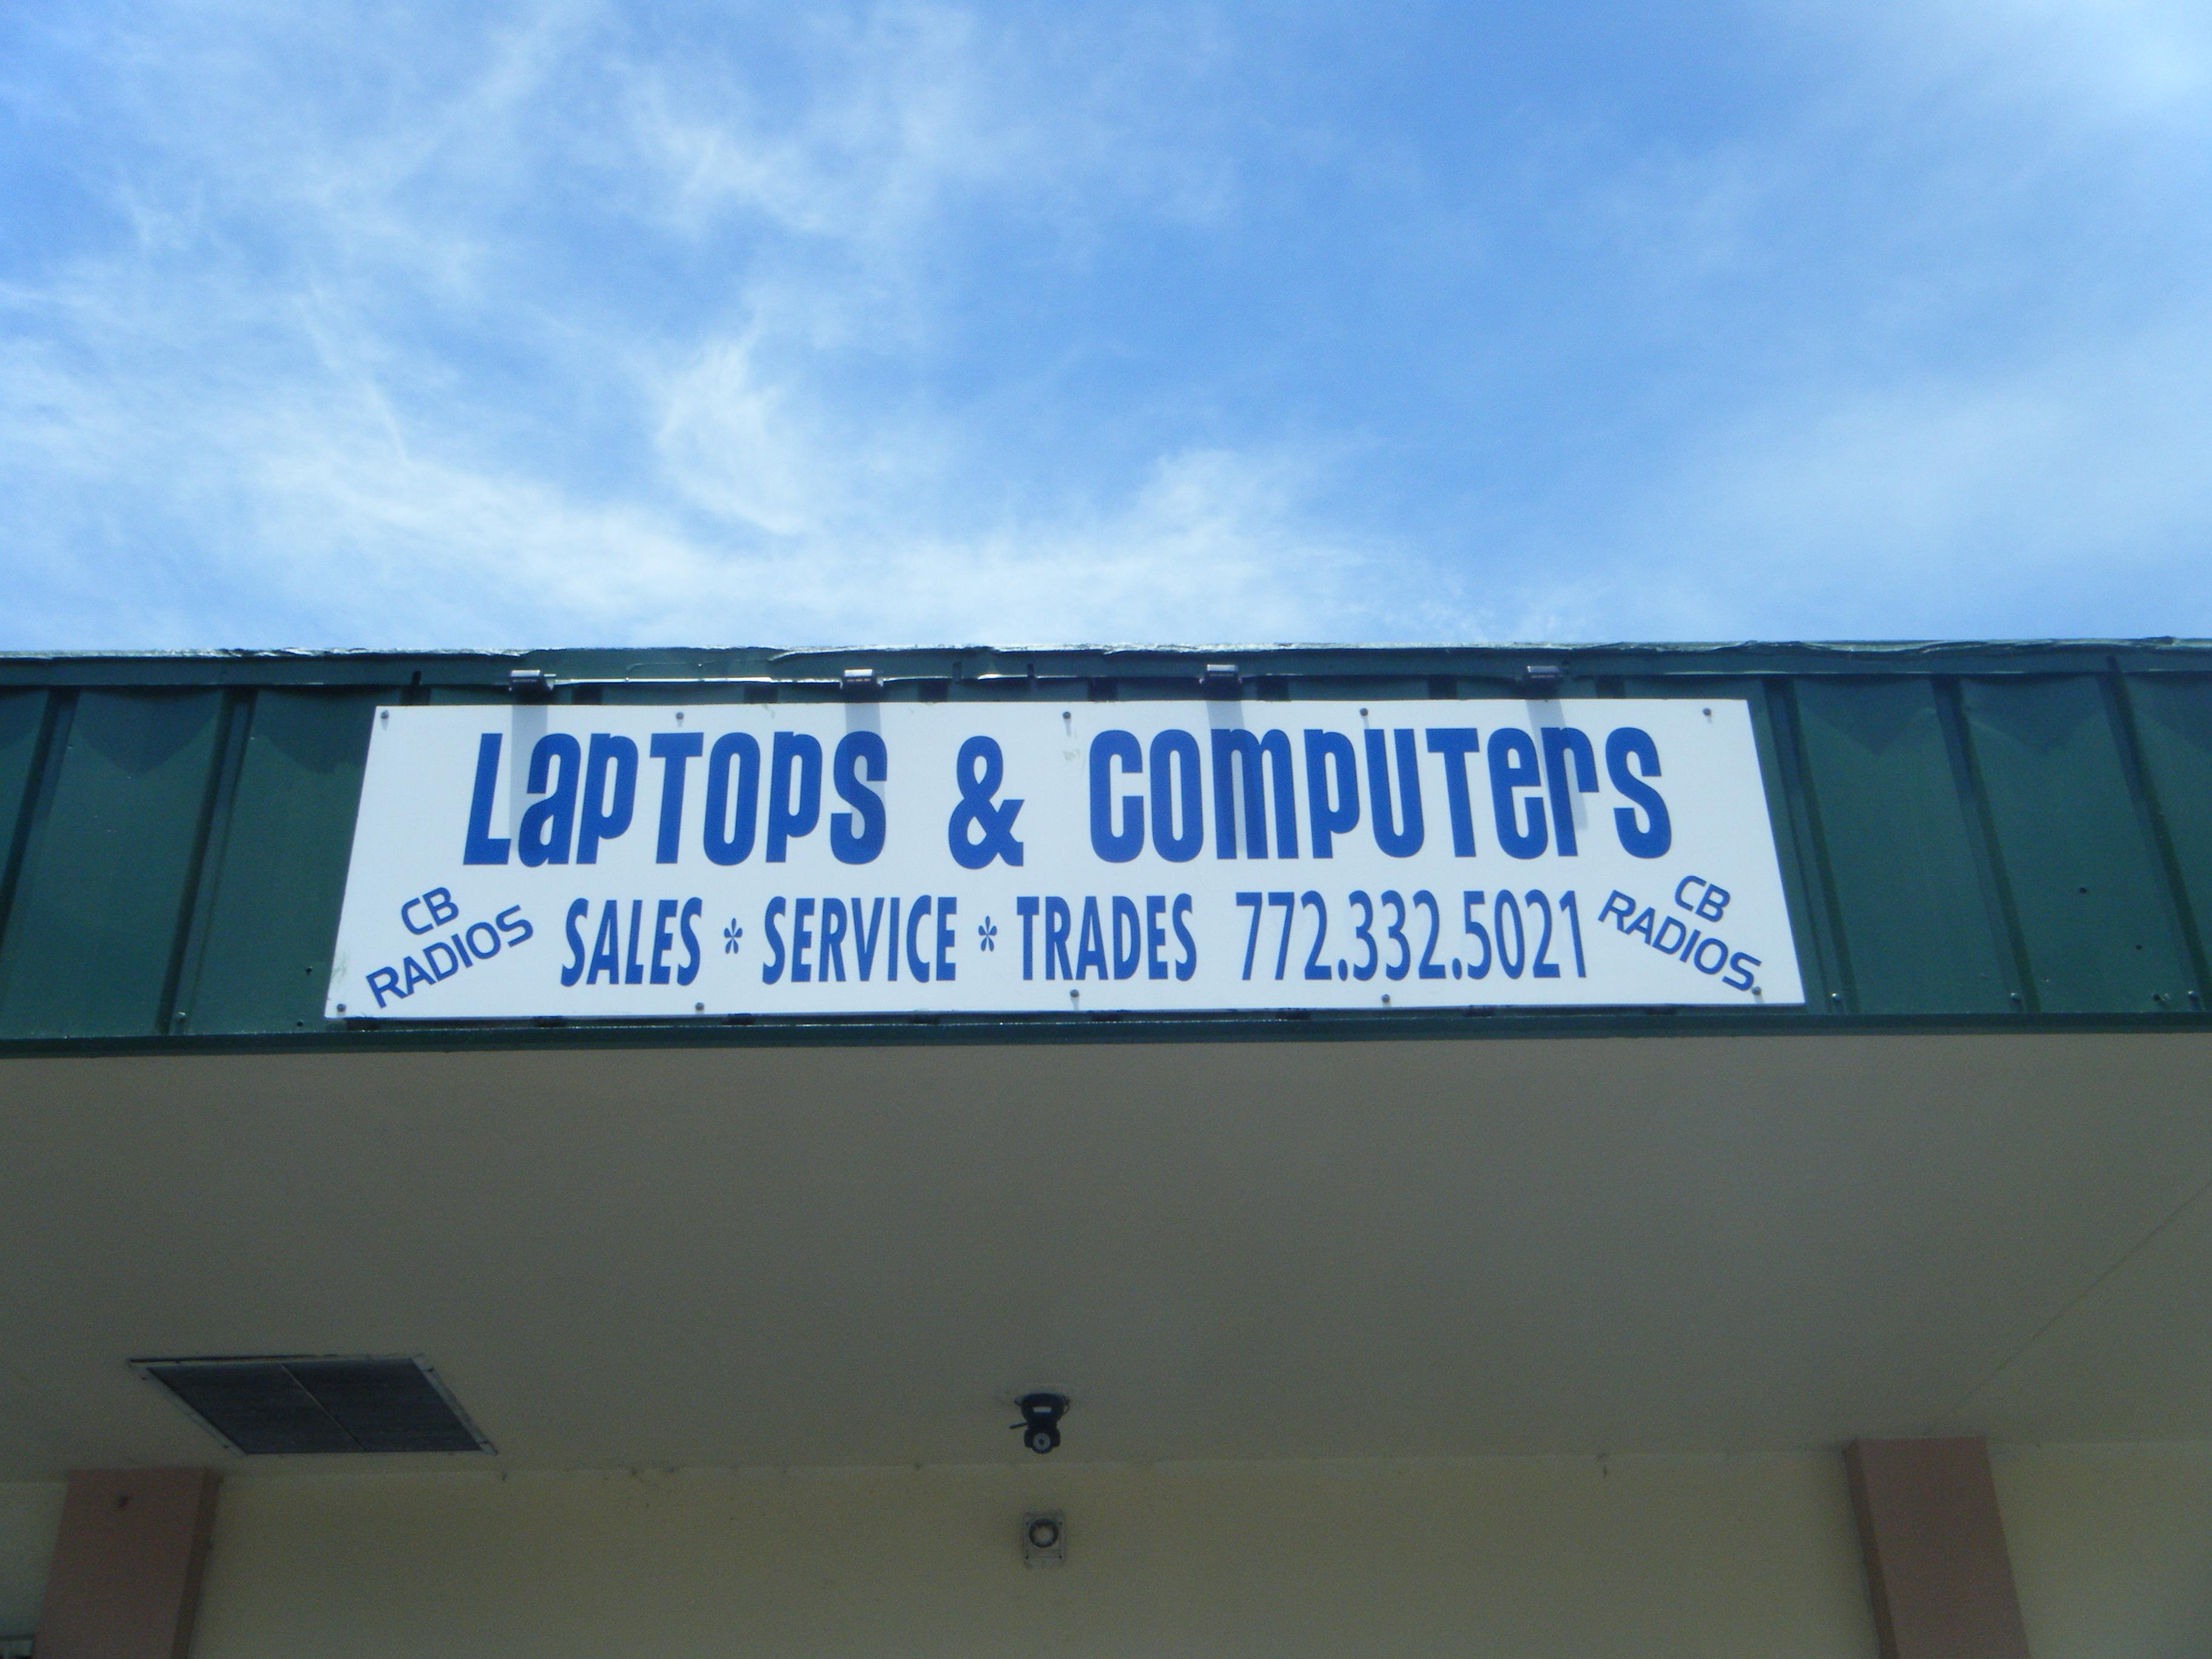 Laptops Computers & More. The Professionals image 0